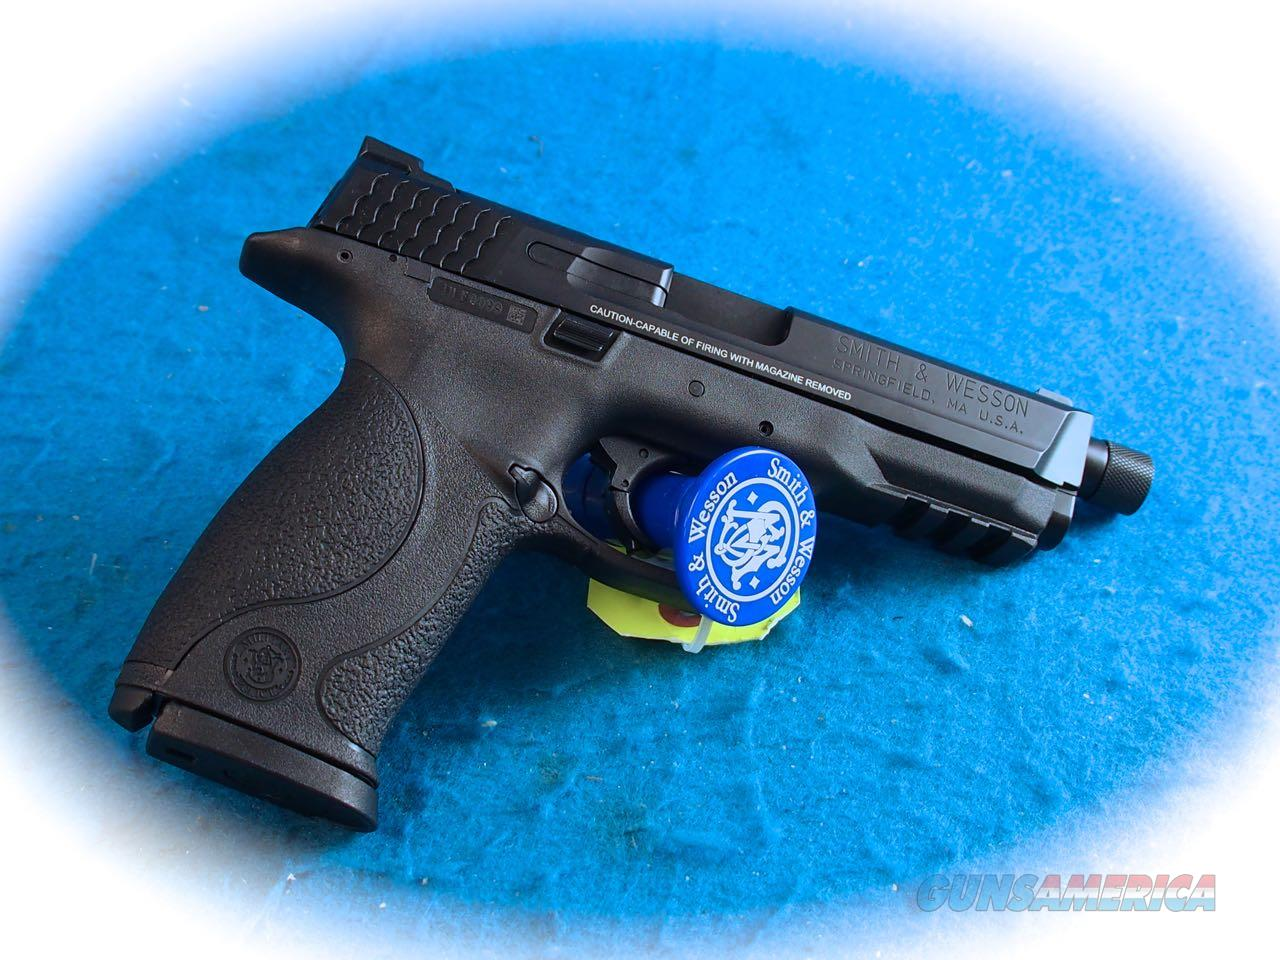 Smith & Wesson M&P9 TB Kit 9mm Pistol Model 150922 **New**  Guns > Pistols > Smith & Wesson Pistols - Autos > Polymer Frame